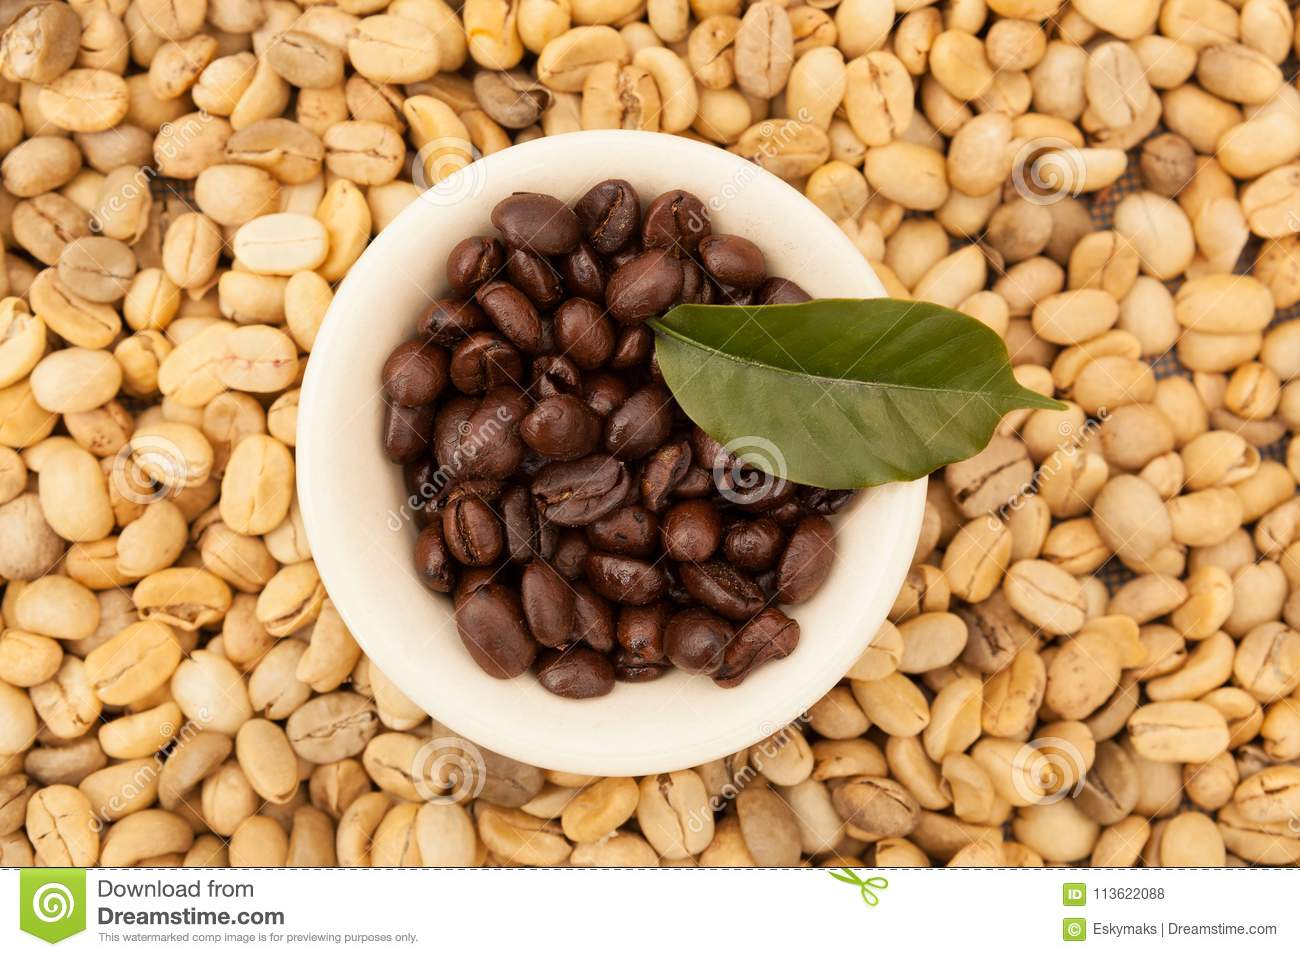 Unroasted Coffee Beans >> Roasted And Unroasted Coffee Beans Stock Photo Image Of